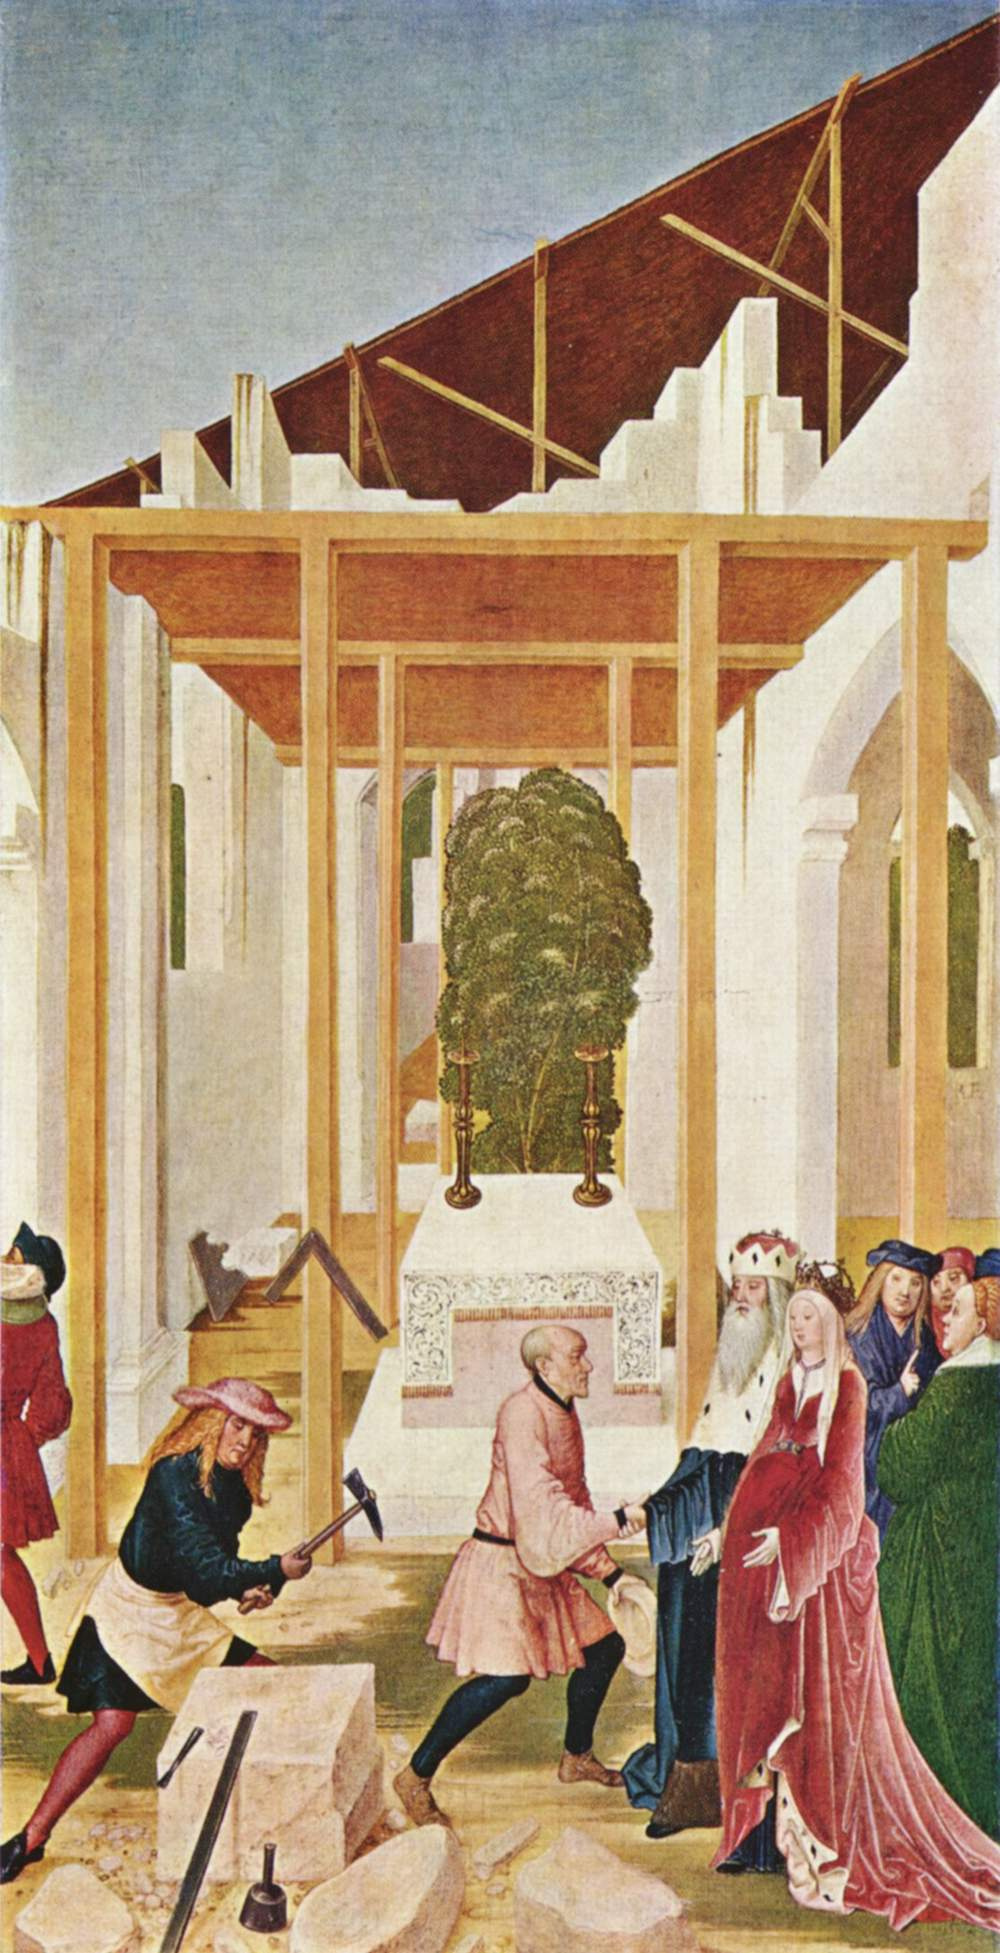 Rueland Fruauf the Younger. The altar of St. Leopold, the side fold: the construction of the monastery Church